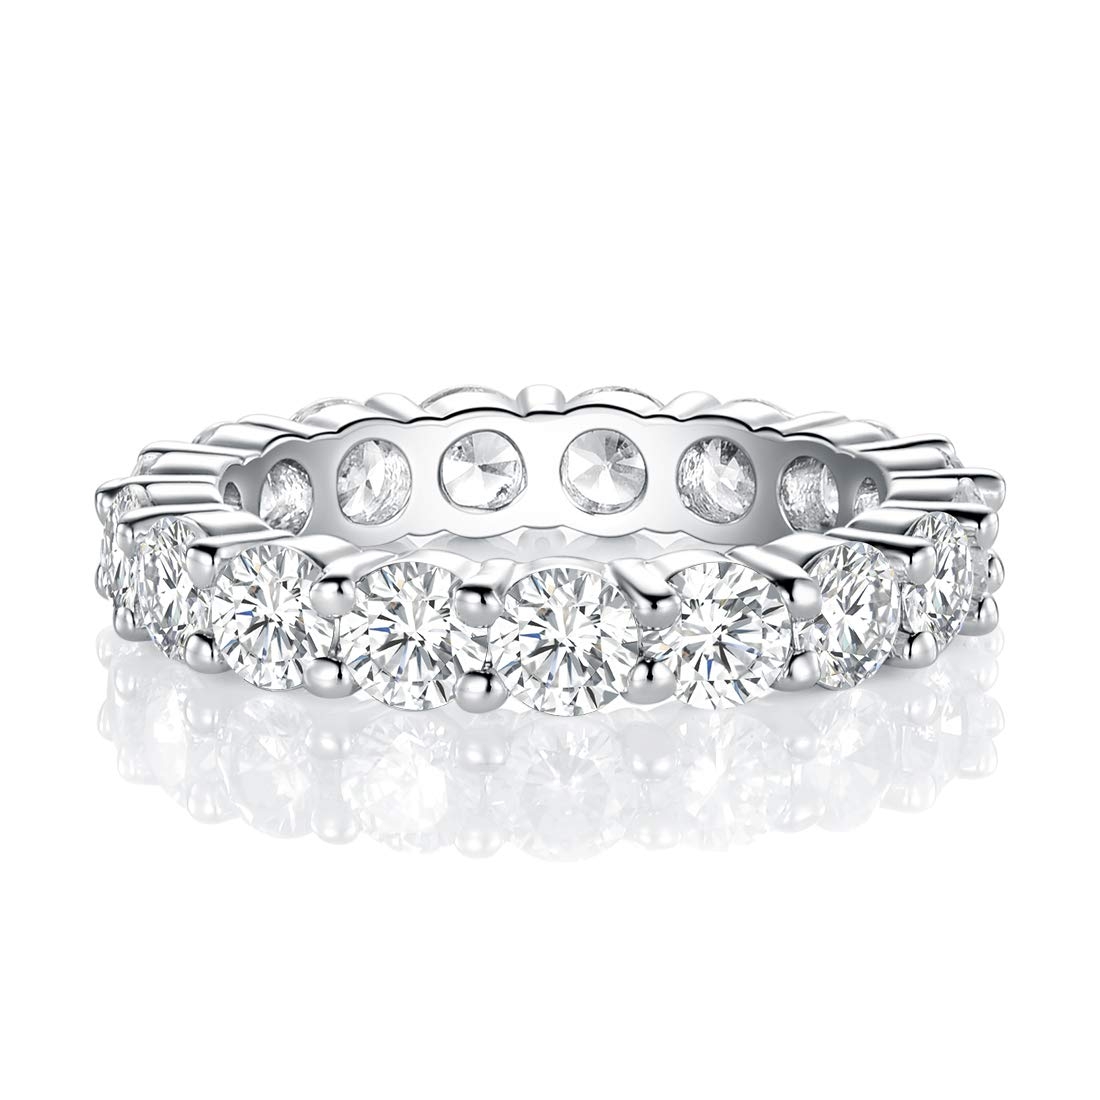 Wedding Band Ring for Women MDFUN 18K White Gold Plated 4.0 Round Cubic Zirconia Eternity Engagement